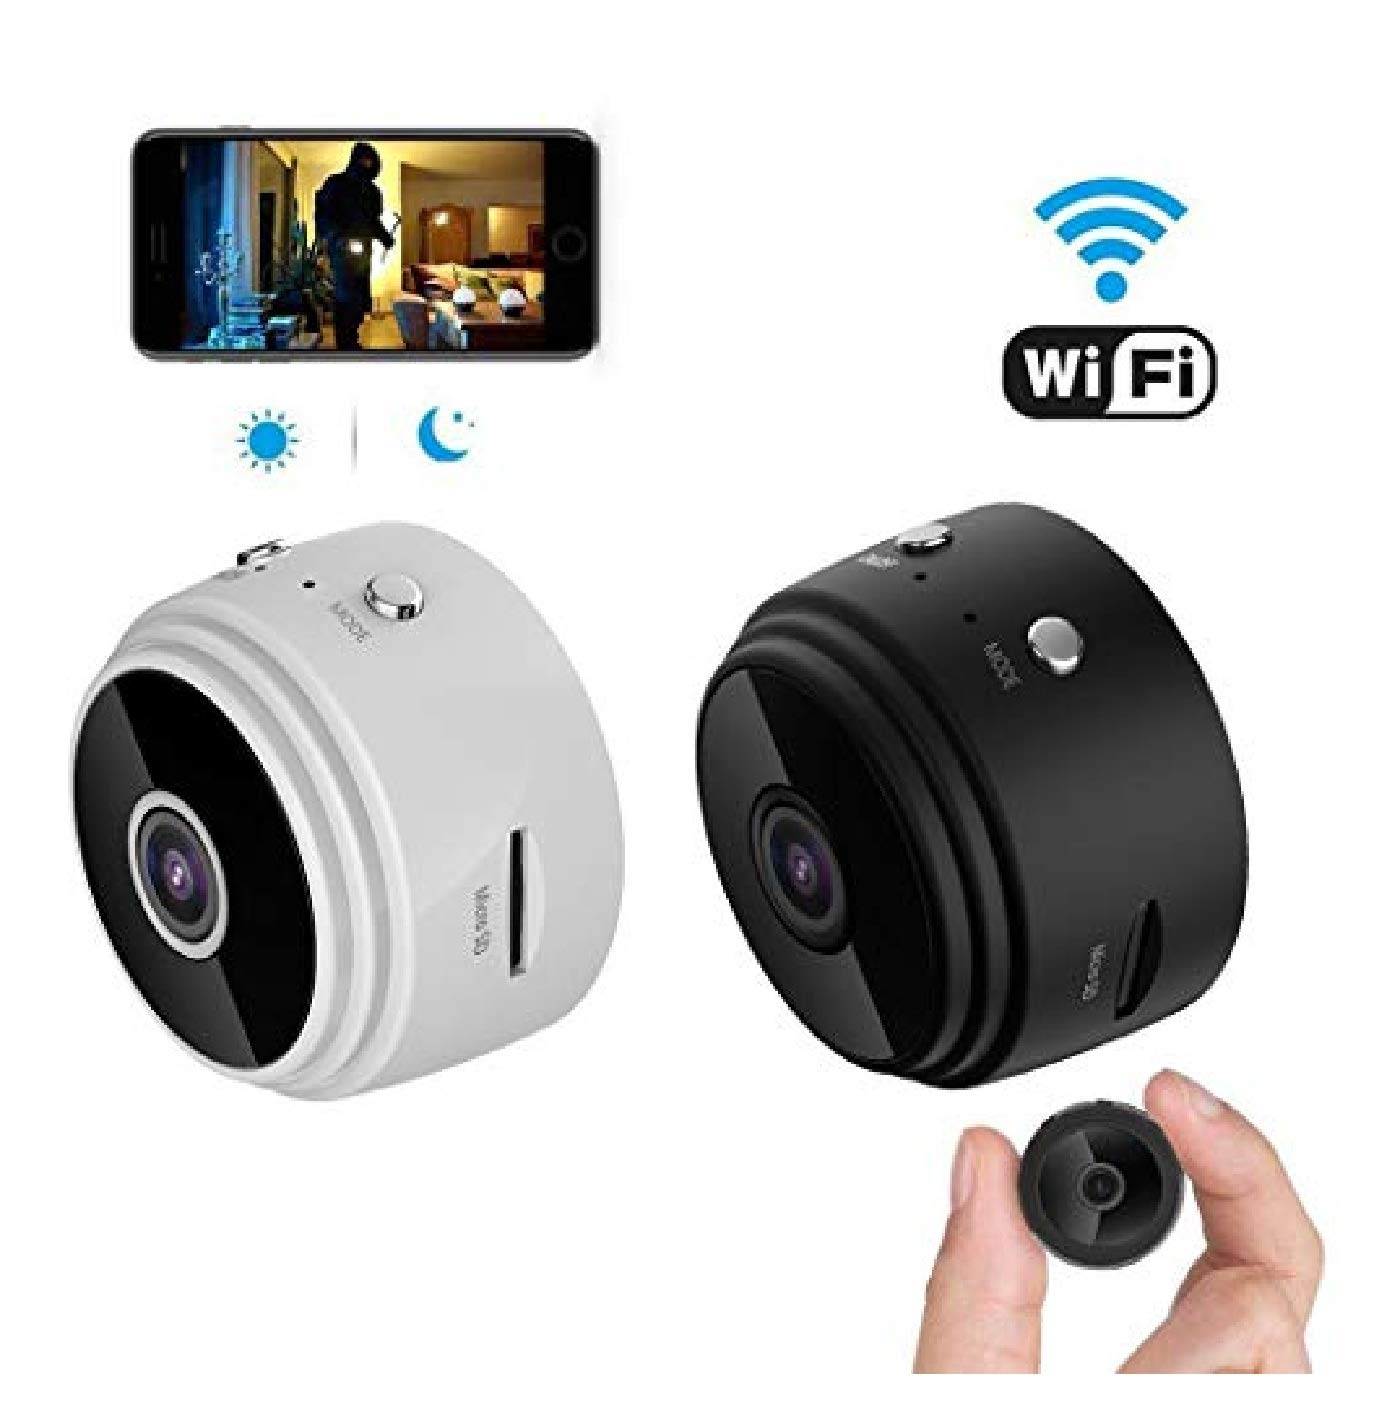 Lanbter 1 Pc 1080P HD WiFi Wireless Sports DV Surveillance Camera Night Vision 1920 x 1080 Security Video Recorder by Lanbter